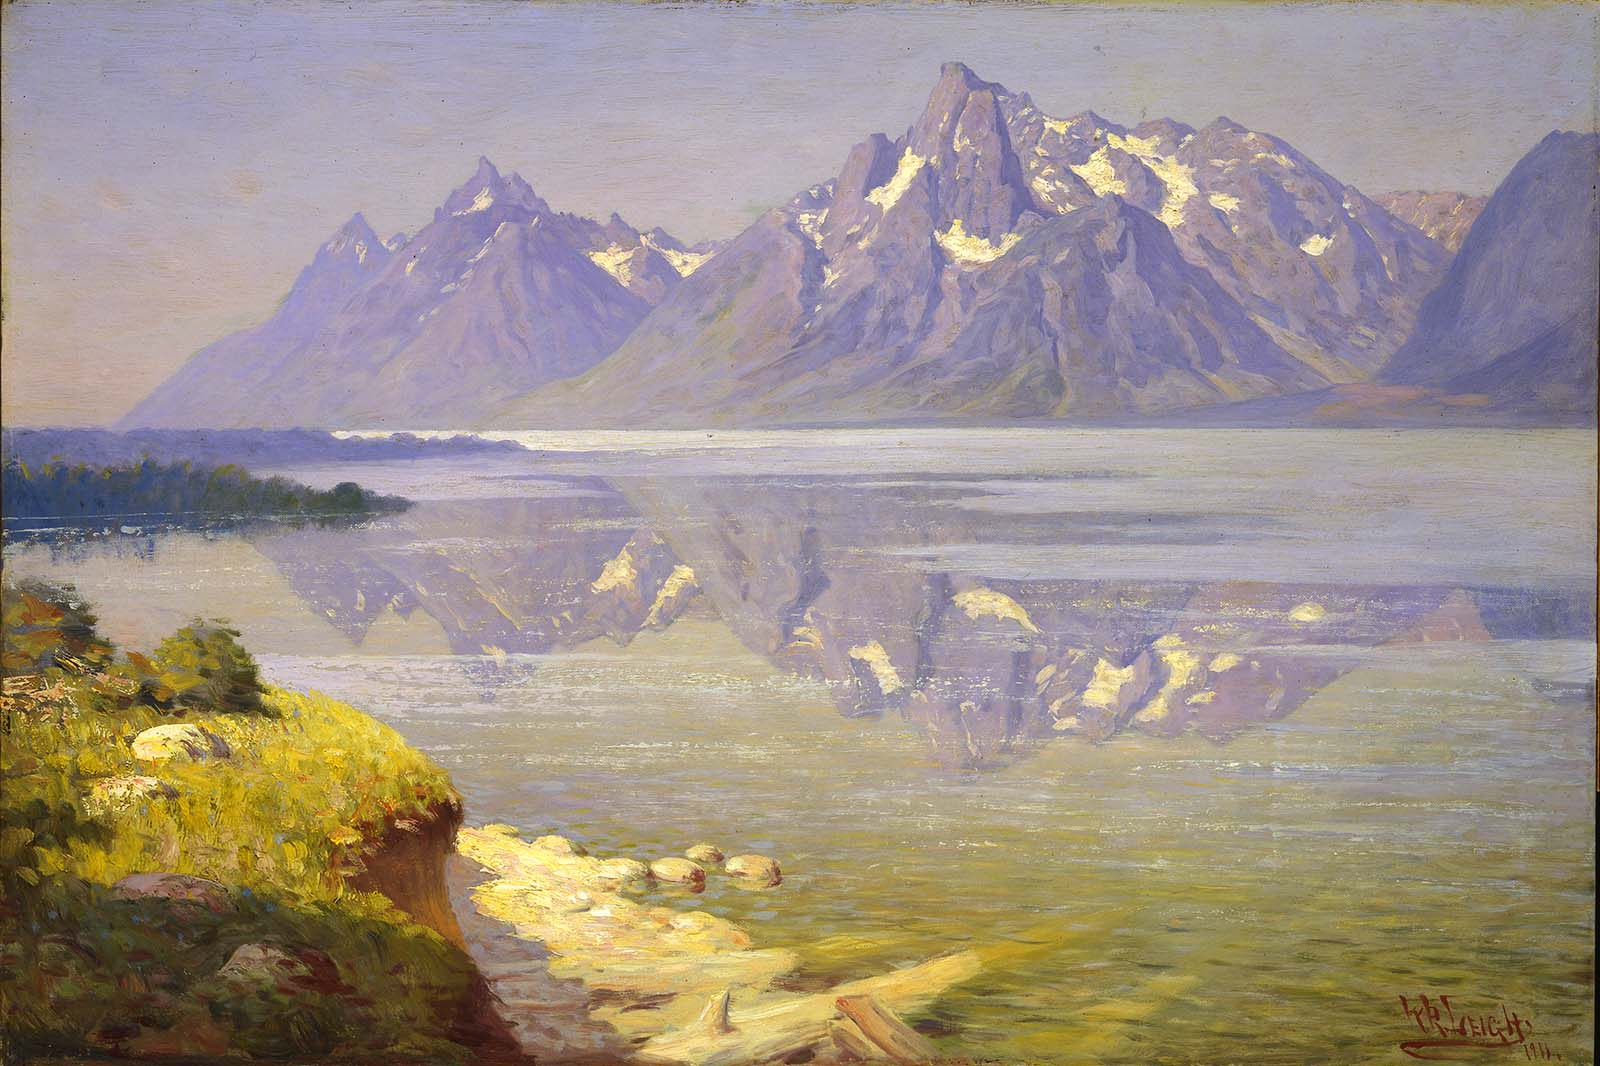 """William R. Leigh (1866-1955). """"The Three Tetons,"""" 1911. Oil on canvas. Gift of Michael Coleman (by exchange). 20.85"""